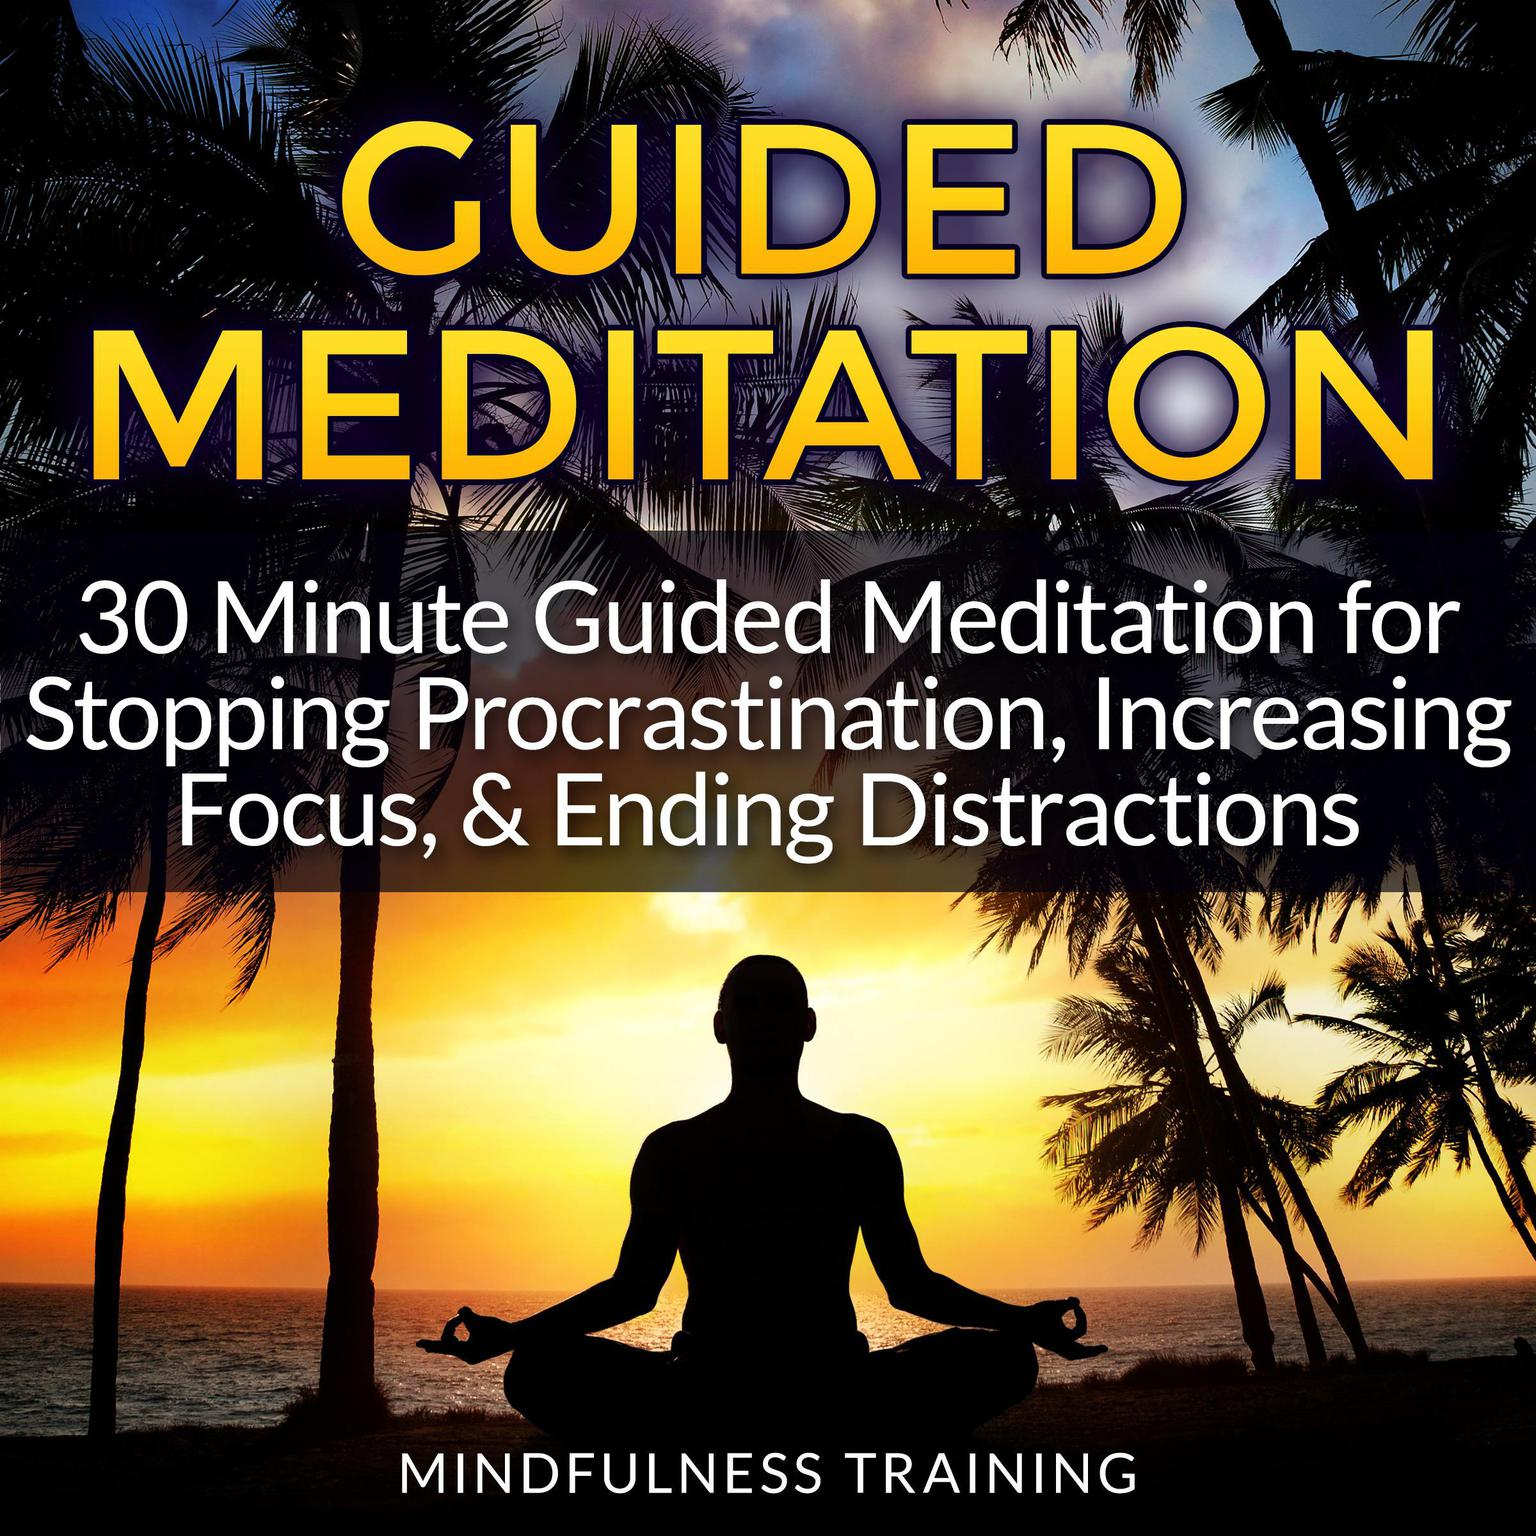 Printable Guided Meditation: 30 Minute Guided Meditation for Stopping Procrastination, Increasing Focus, & Ending Distractions (Deep Sleep Self Hypnosis, Law of Attraction Affirmations, Anxiety & Stress Relief, Guided Imagery & Relaxation Techniques): 30 Minute Guided Meditation for Stopping Procrastination, Increasing Focus, & Ending Distractions Audiobook Cover Art